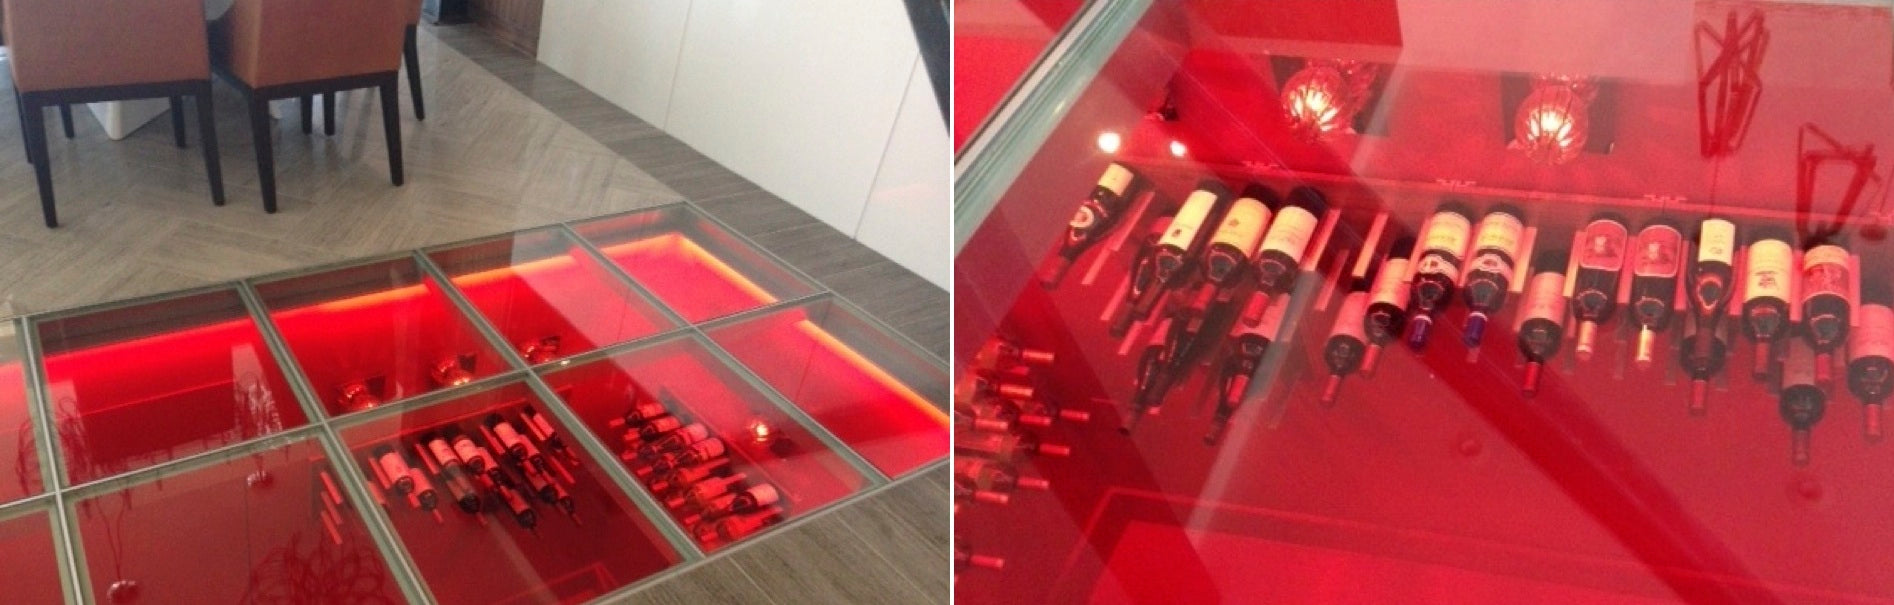 glass floor wine cellar